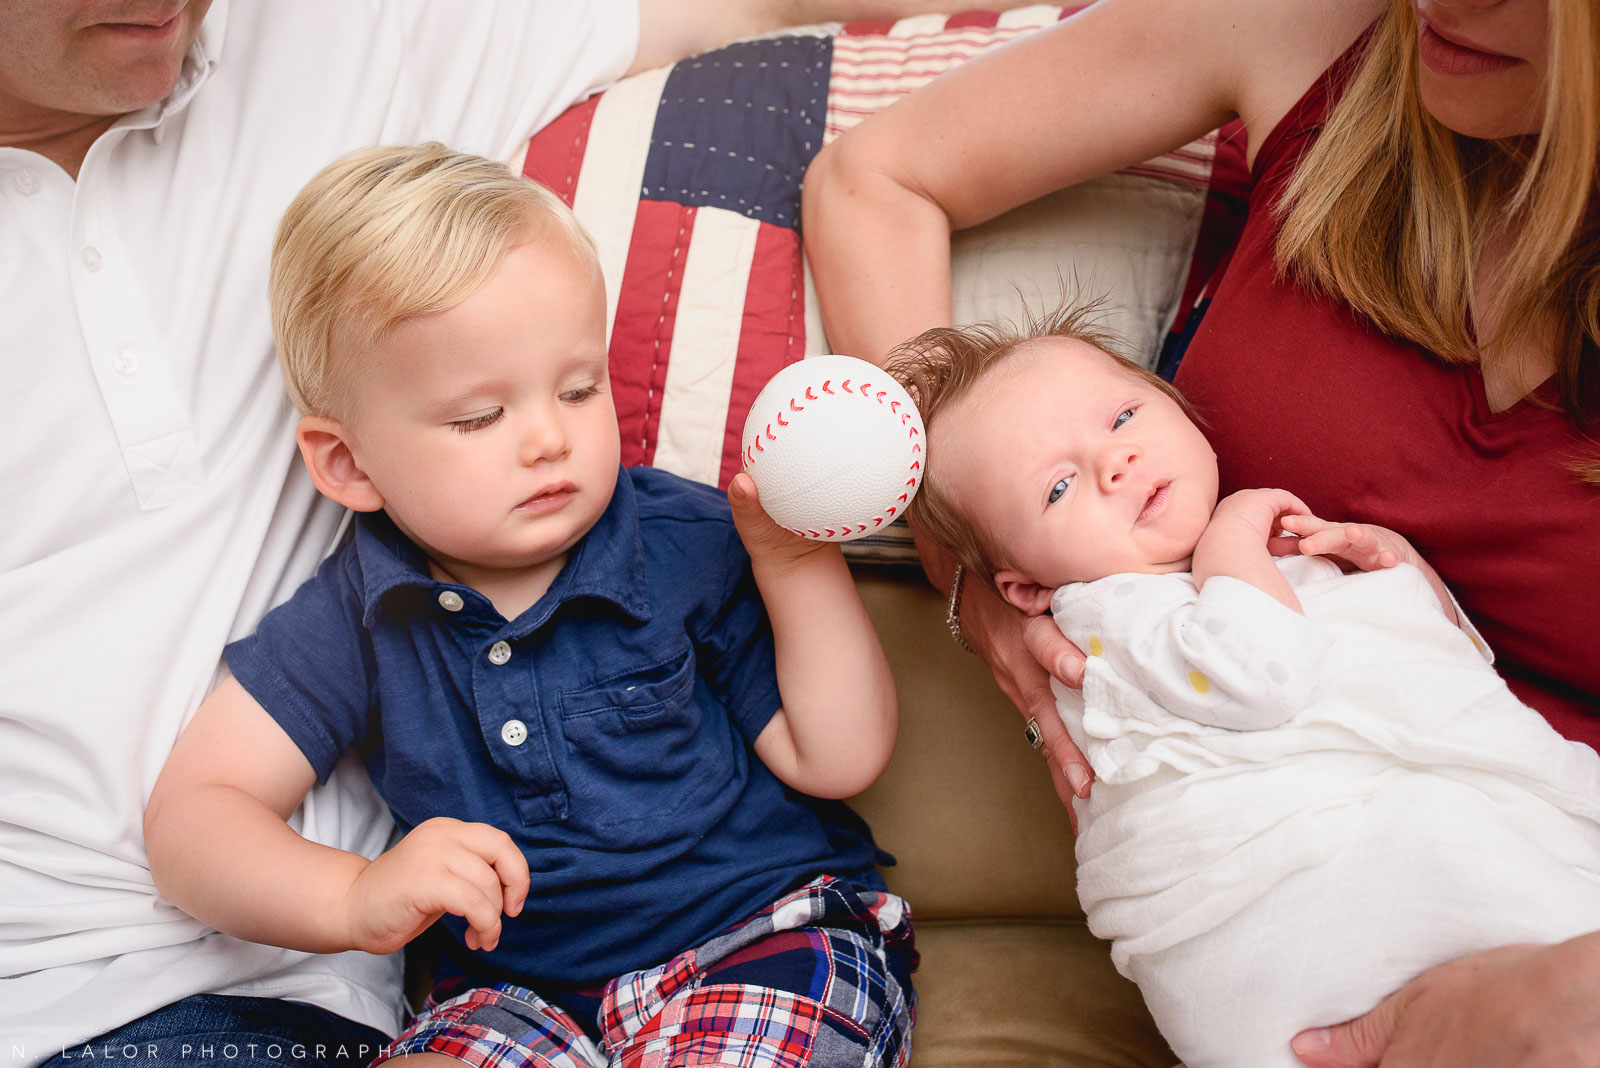 Siblings. Lifestyle family session by N. Lalor Photography. Fairfield County, Connecticut.